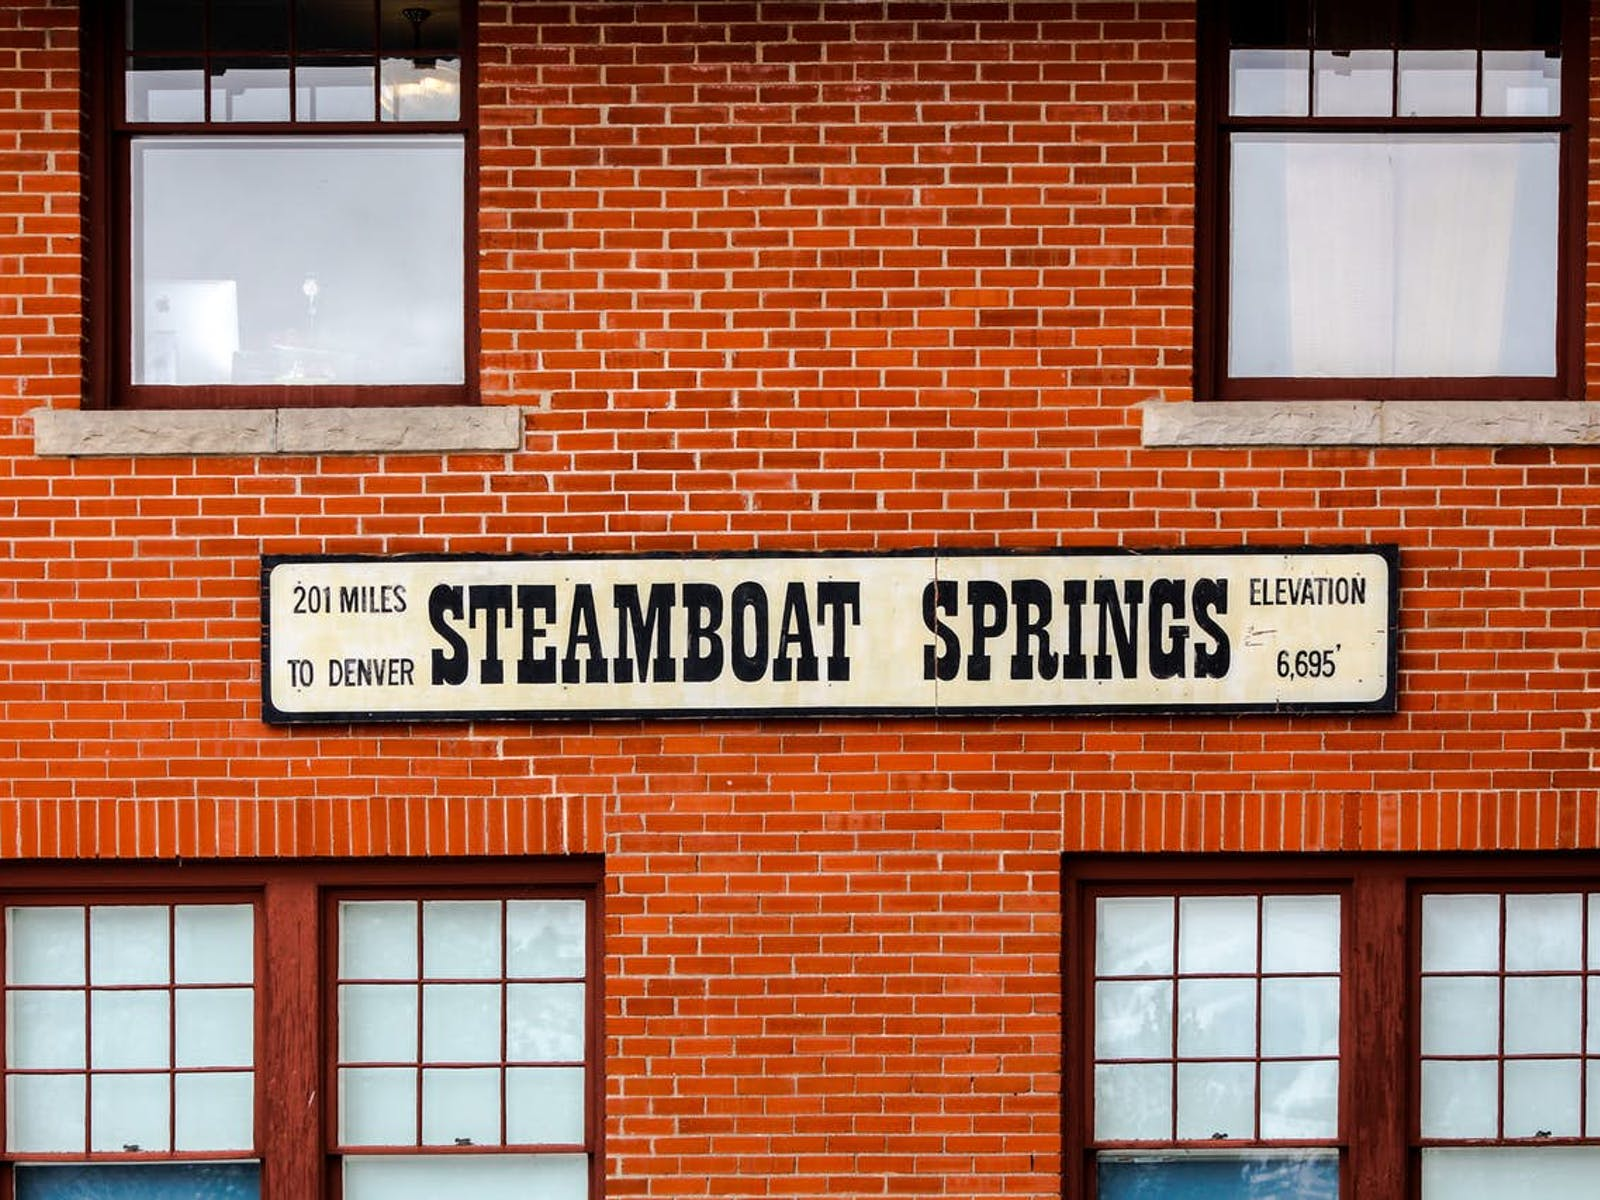 Steamboat Springs in Colorado